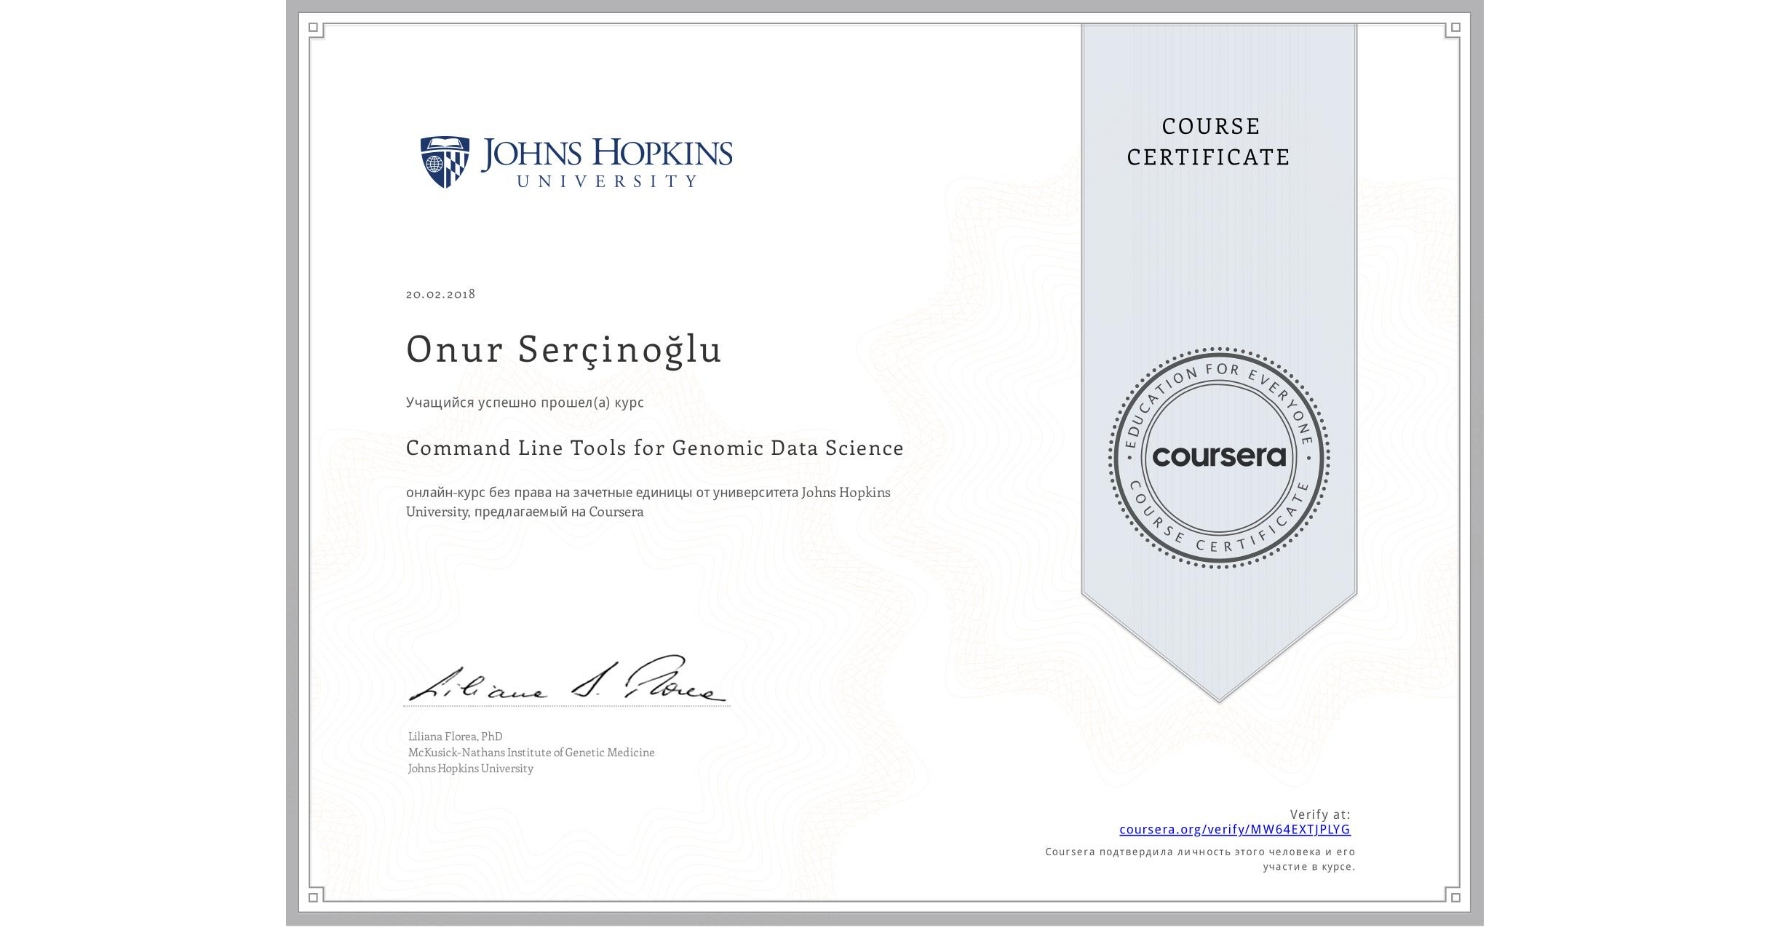 View certificate for Onur Serçinoğlu, Command Line Tools for Genomic Data Science, an online non-credit course authorized by Johns Hopkins University and offered through Coursera